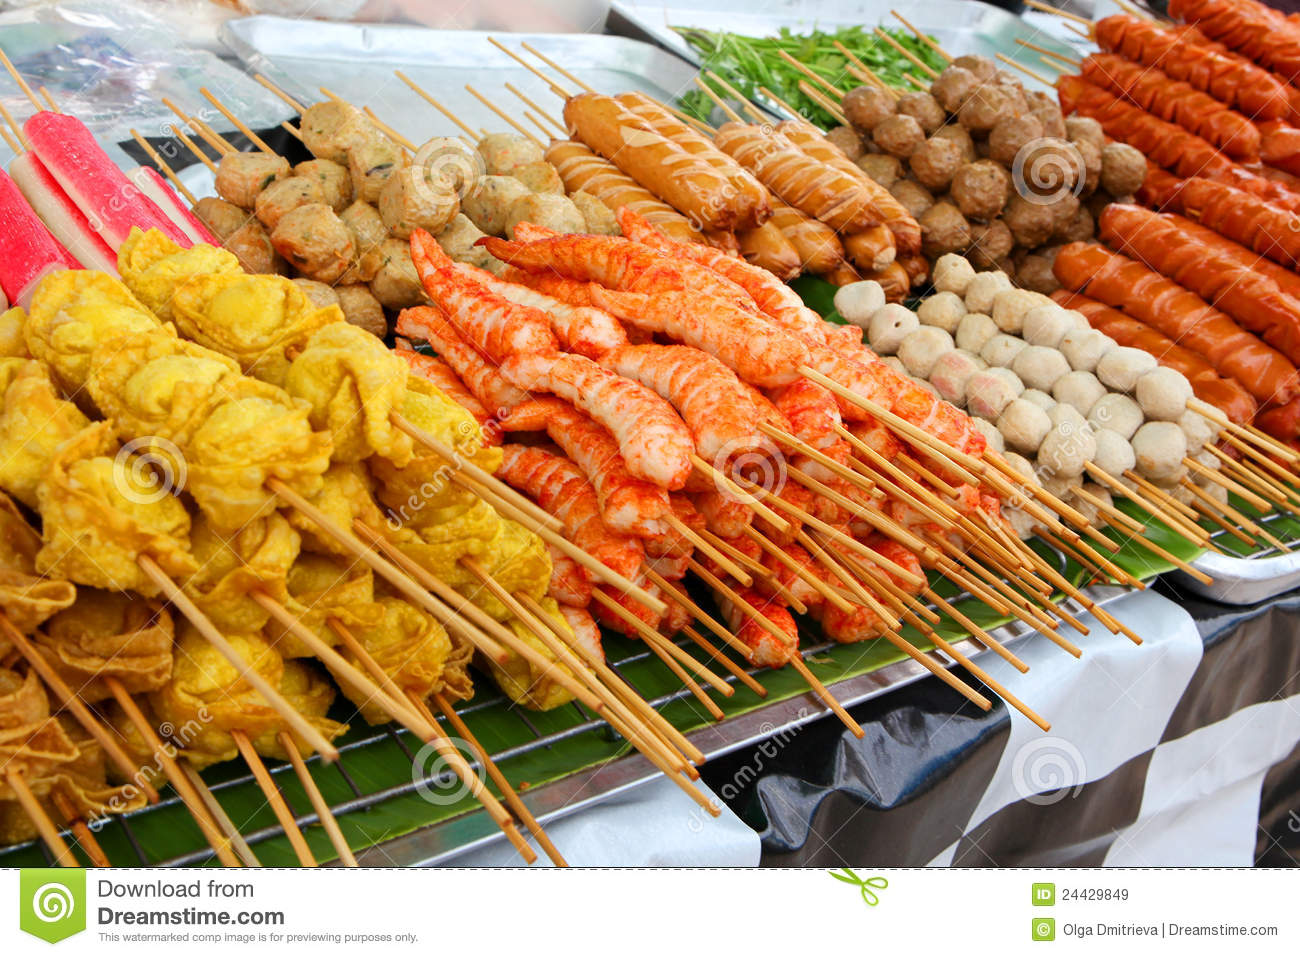 Meatballs and fried shrimps on sticks at a market in Phuket, Thailand.